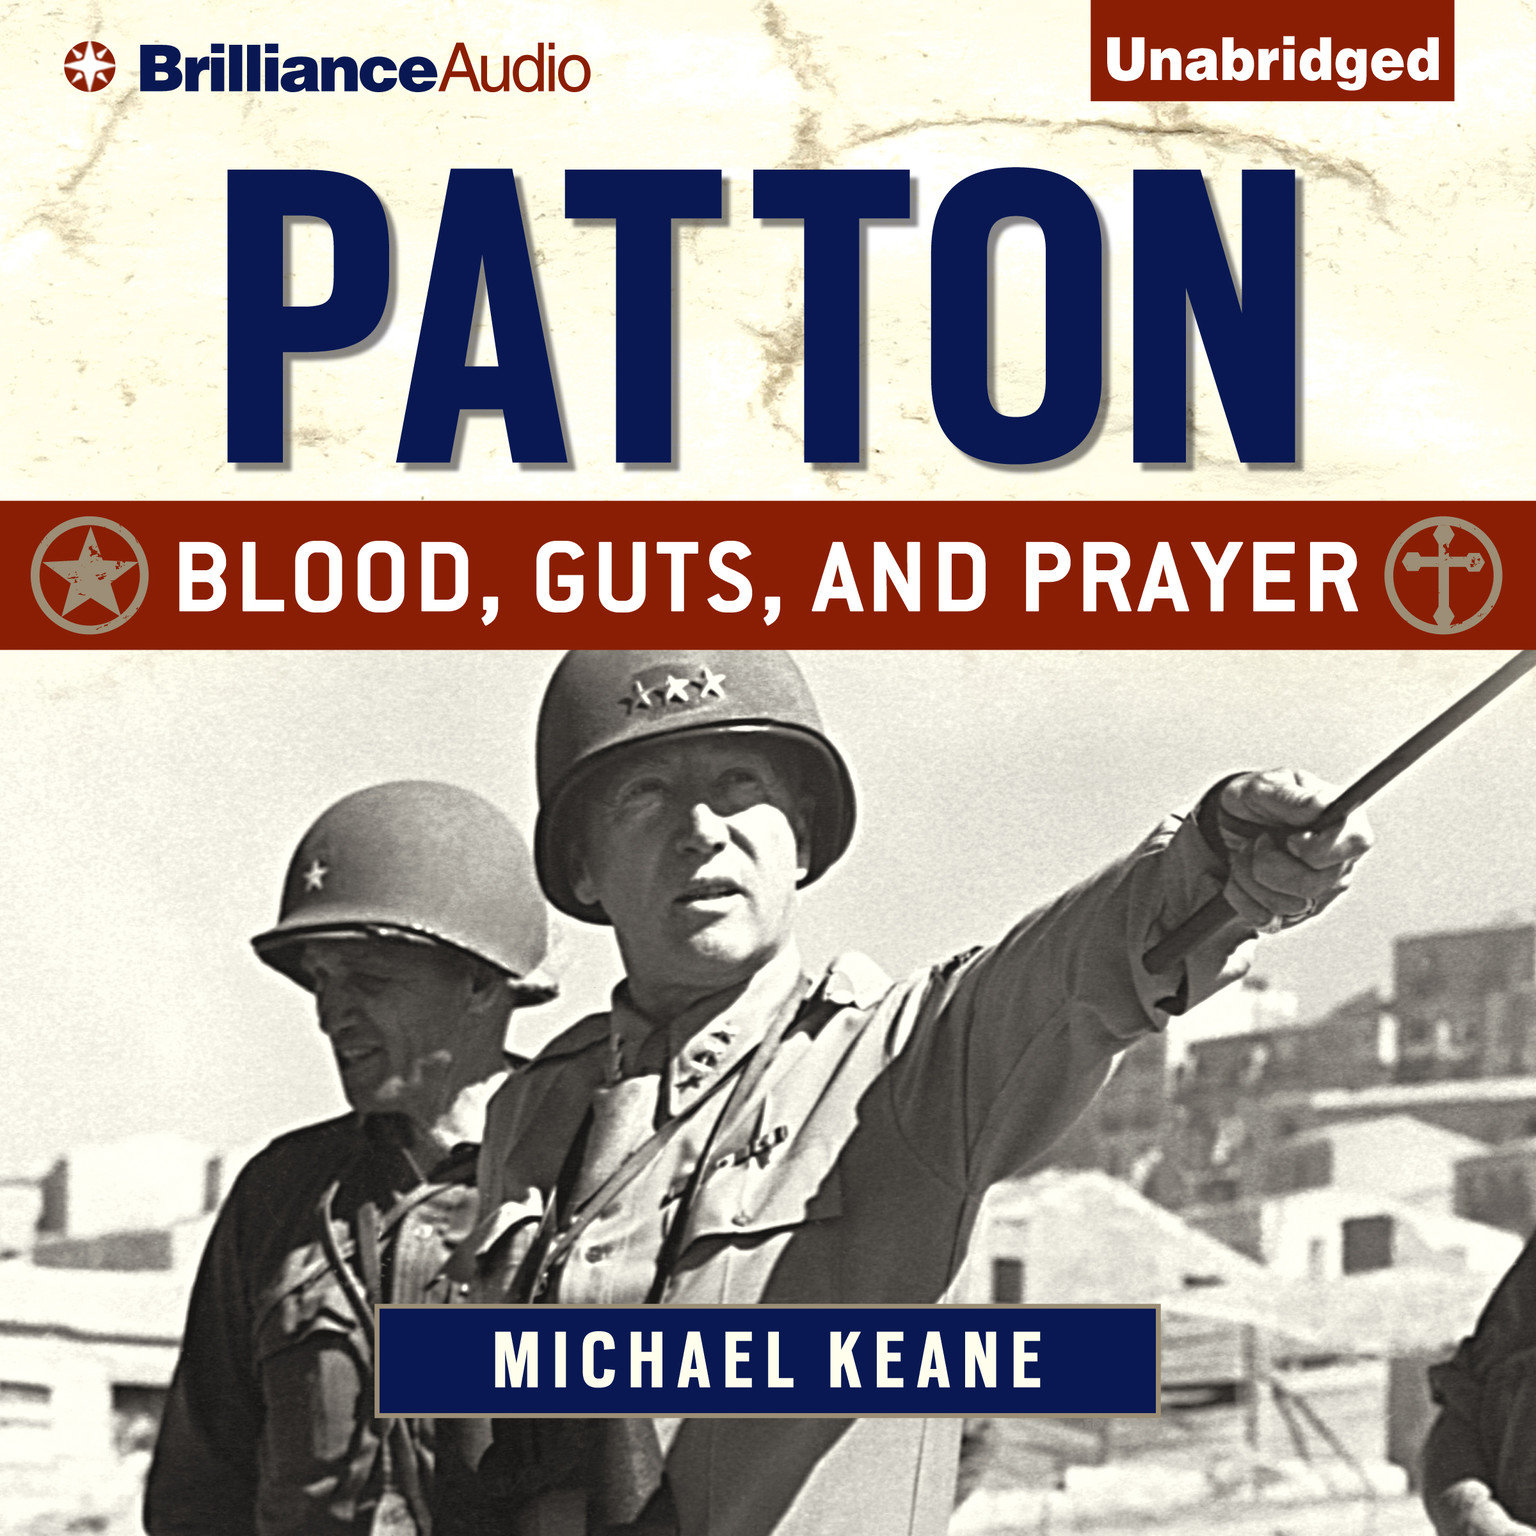 Printable Patton: Blood, Guts, and Prayer Audiobook Cover Art